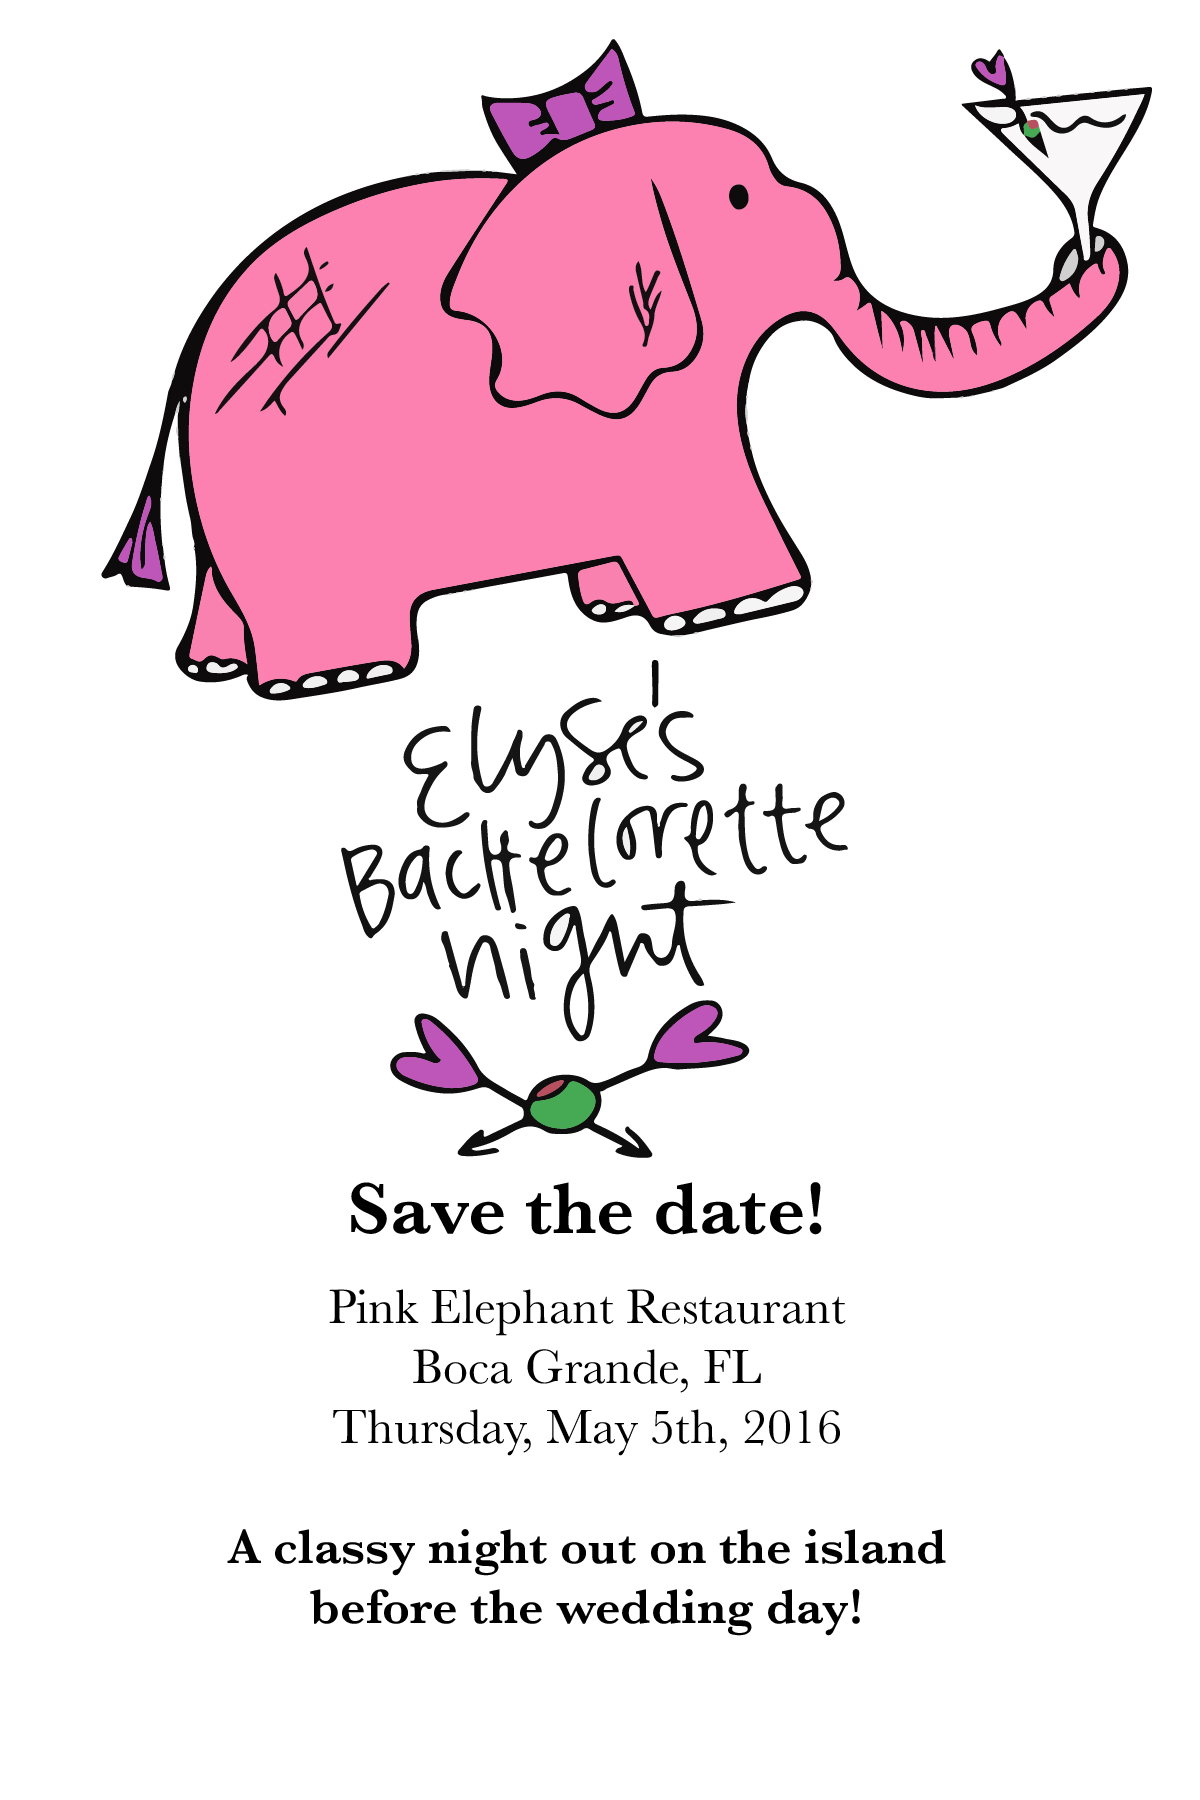 A save the date we didn't end up using for Elyse's big party. But it's too cute to leave out!